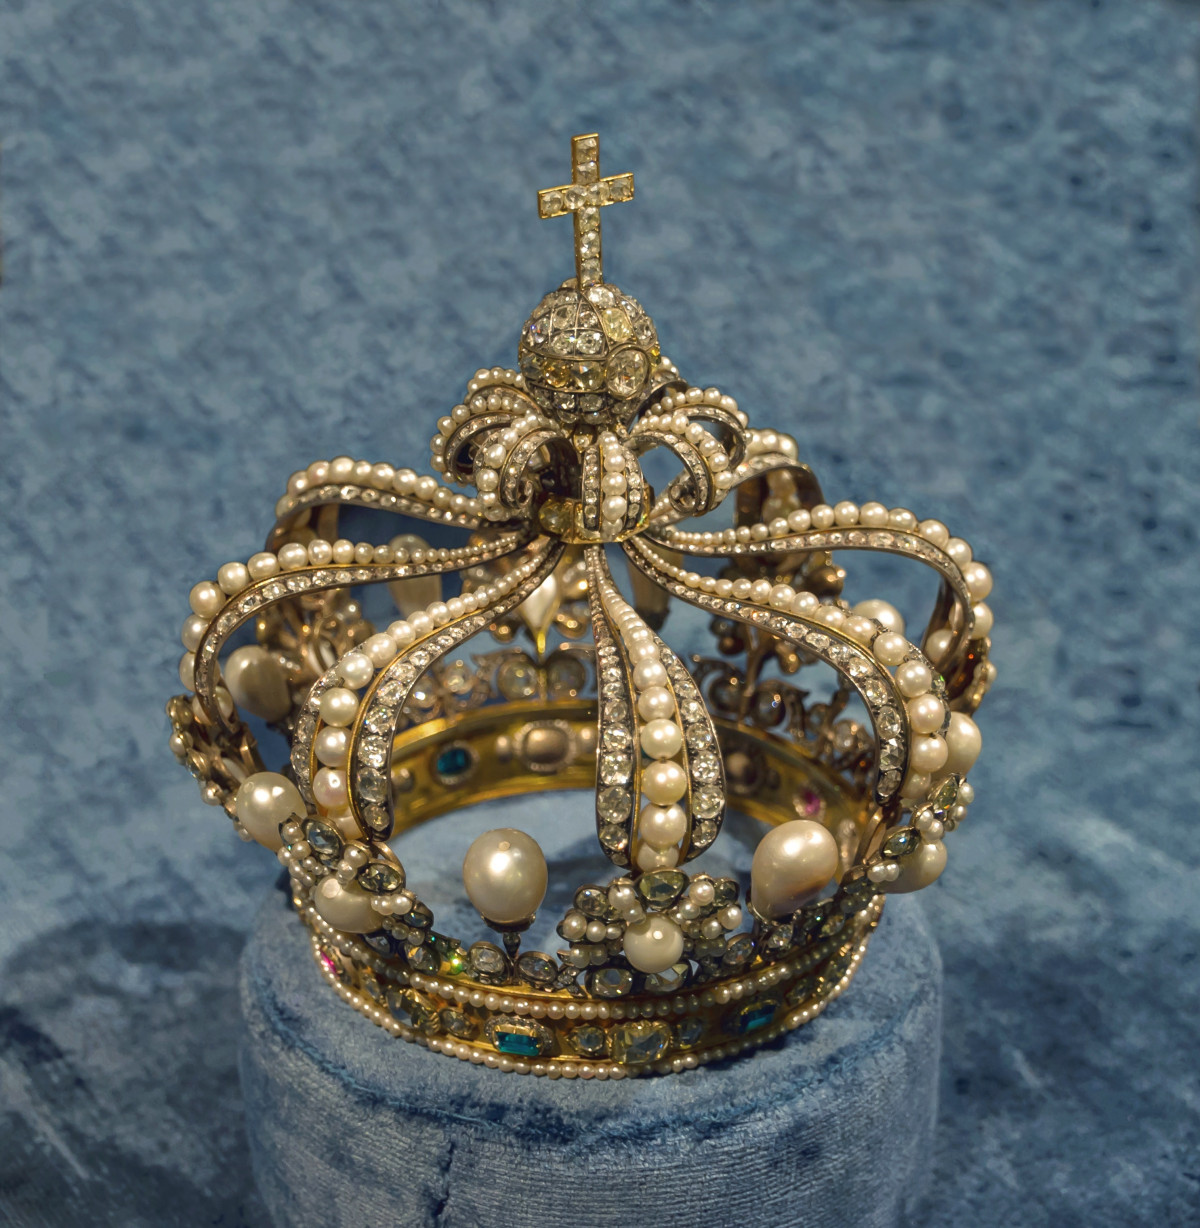 Free Images Clothing Headgear Crown Jewellery Royal